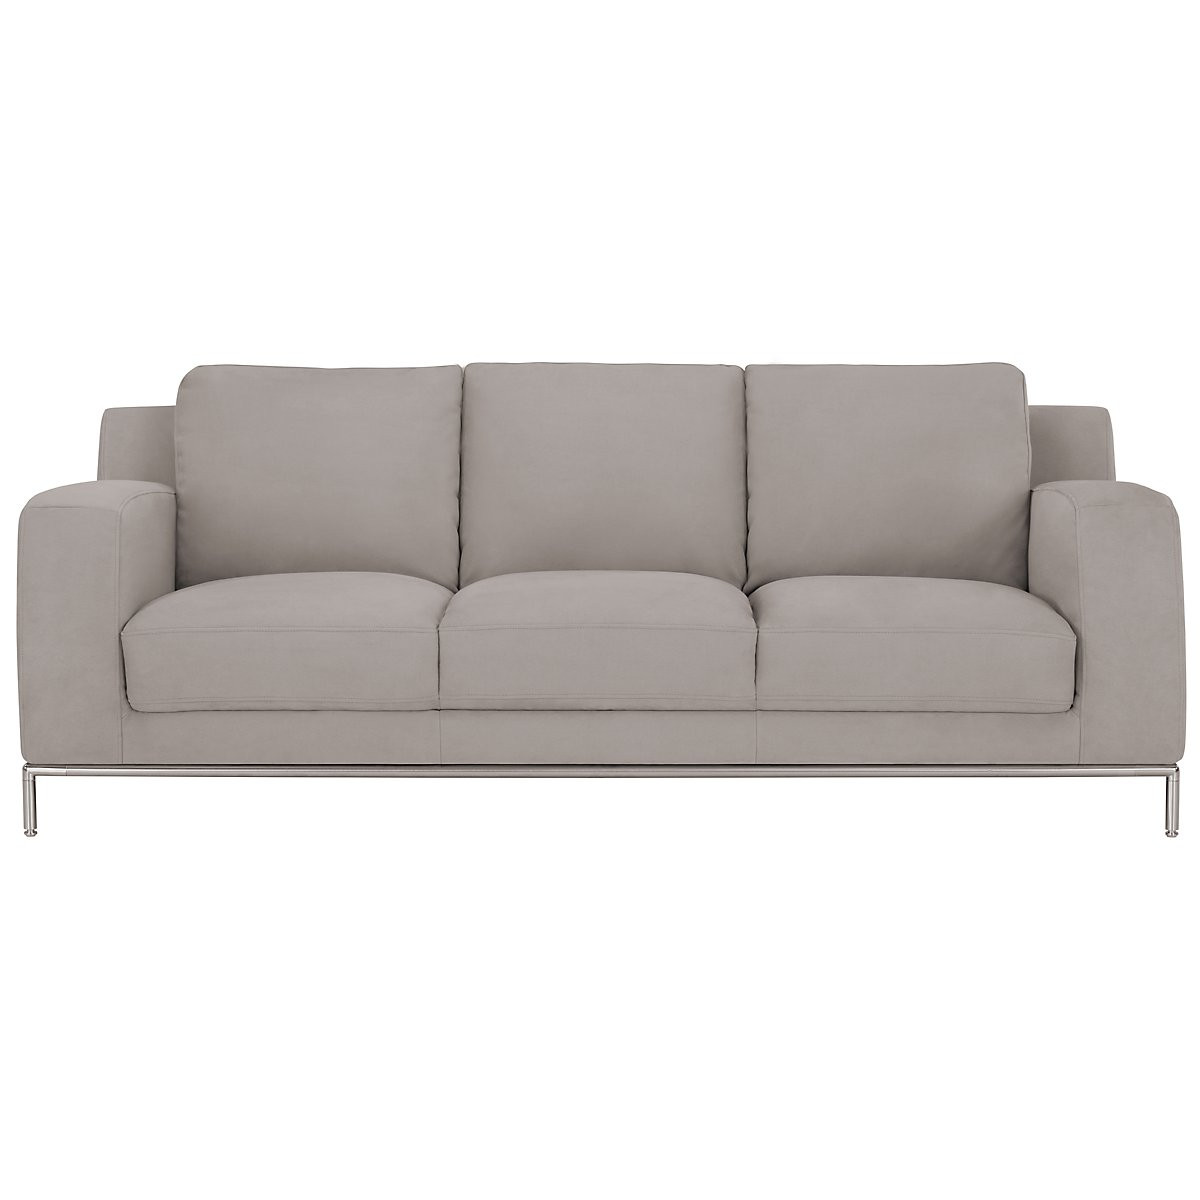 Best ideas about Light Gray Sofa . Save or Pin Wynn Light Gray Microfiber Sofa Now.